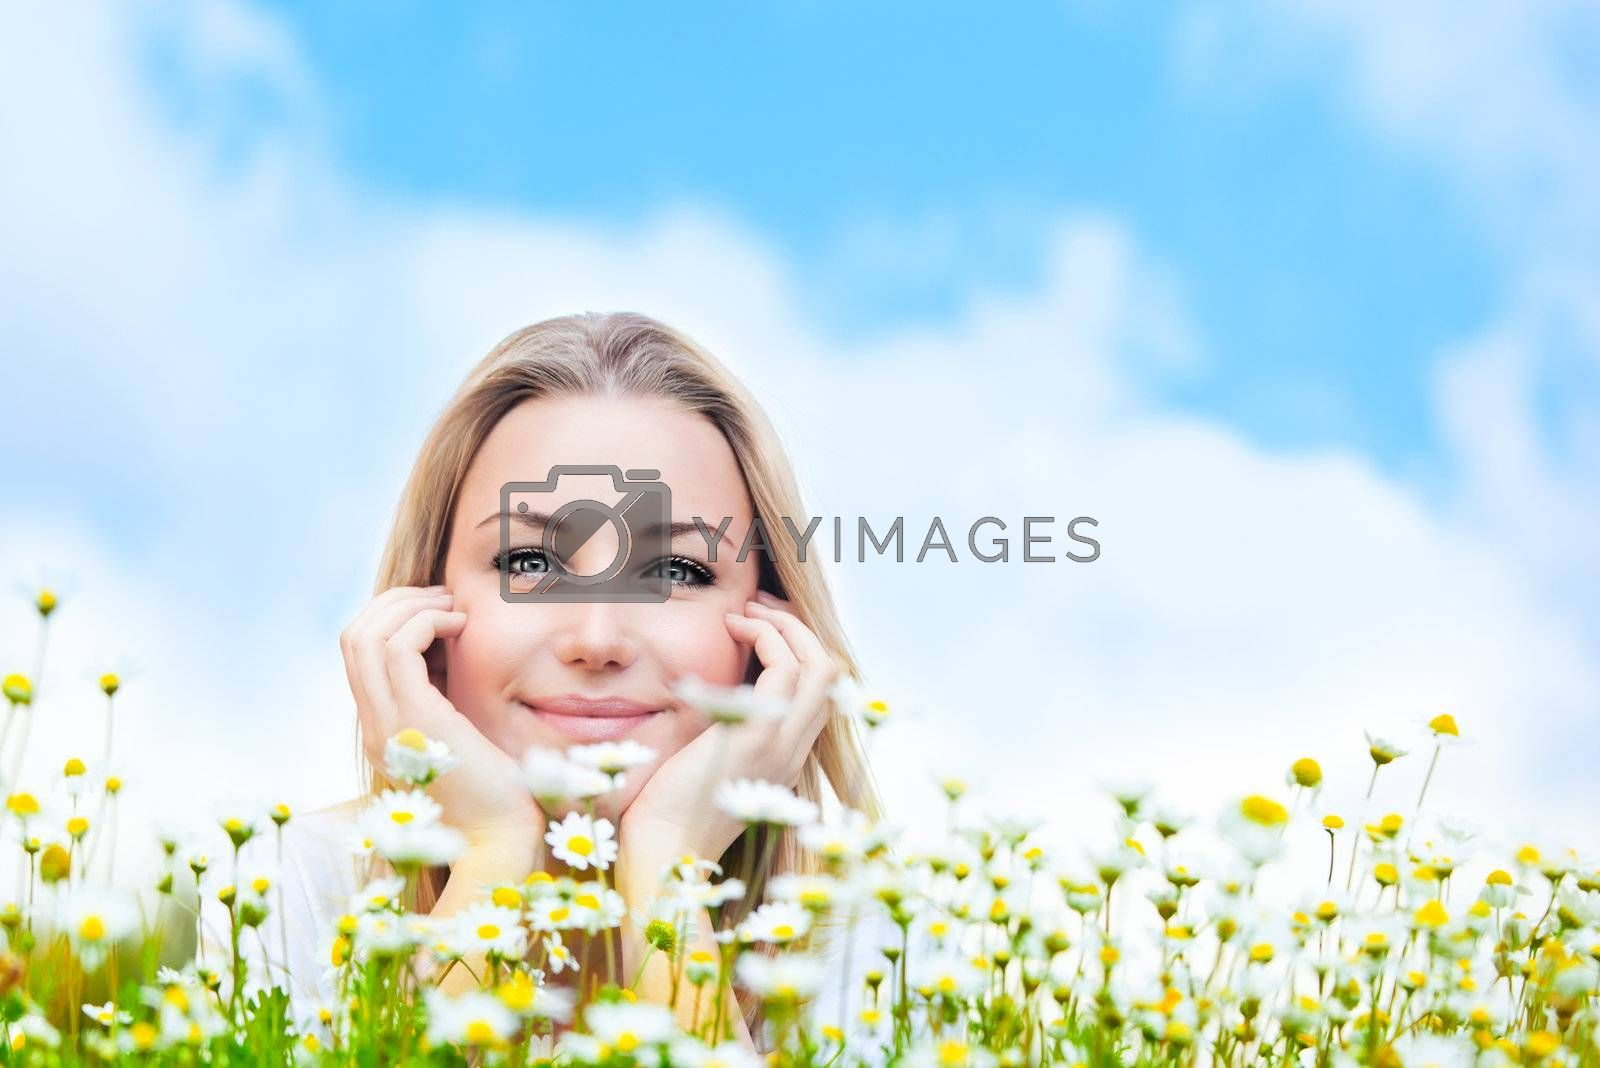 Happy young female lying on the flower field, over blue cloudy sky, with copyspace, leisure, fun and wellness concept